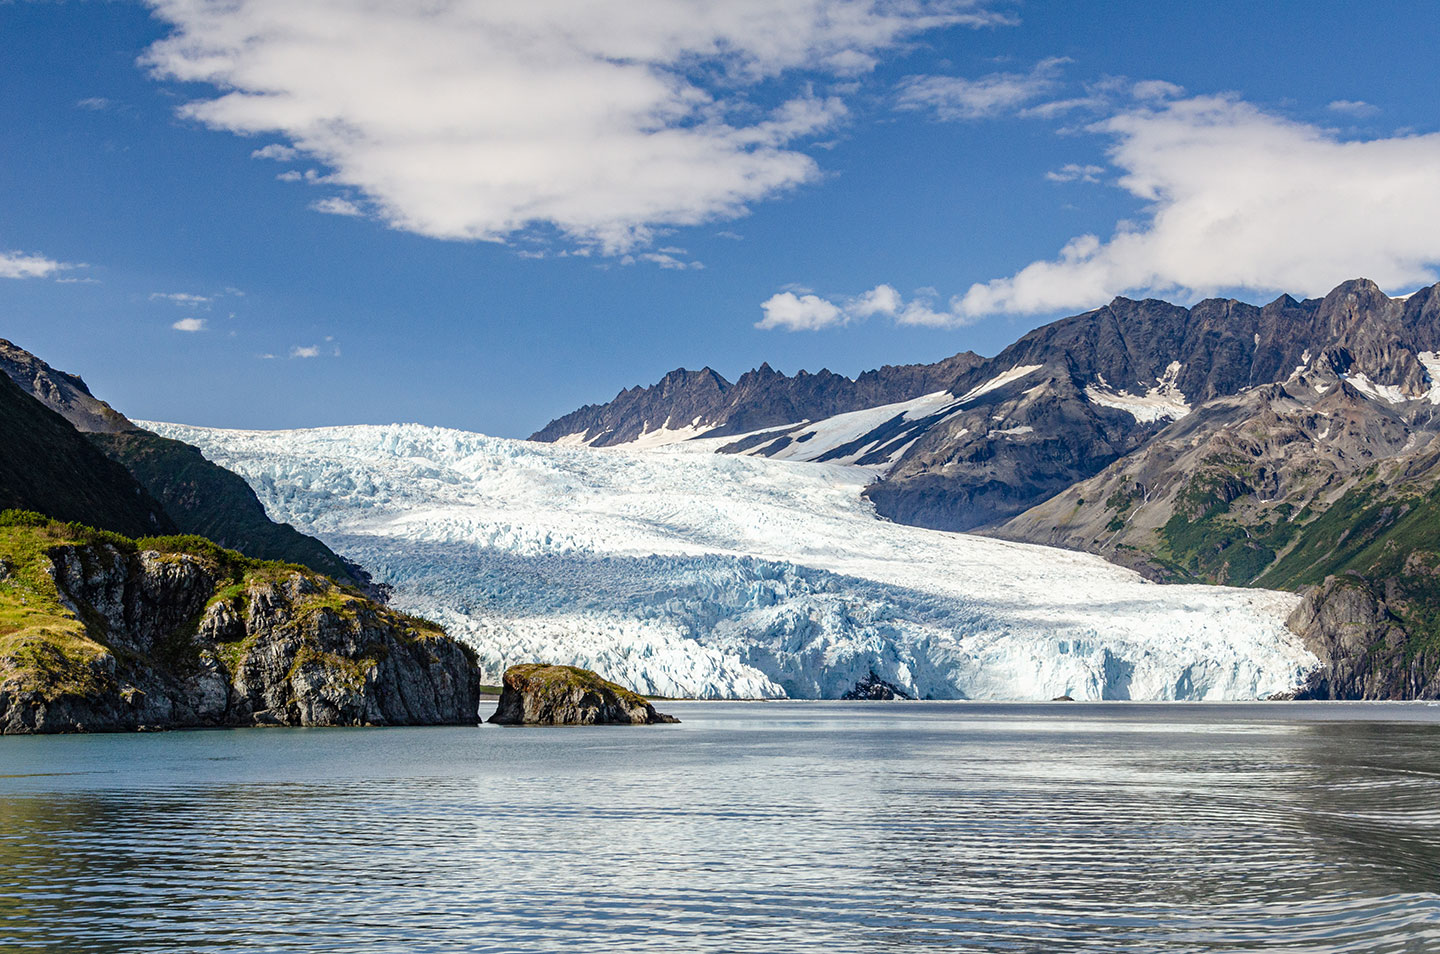 Aialik Glacier in Kenai Fjords National Park is an example of the challenging topography facing coastal mapping in Alaska. Photo courtesy of www.dorevorum.photography.